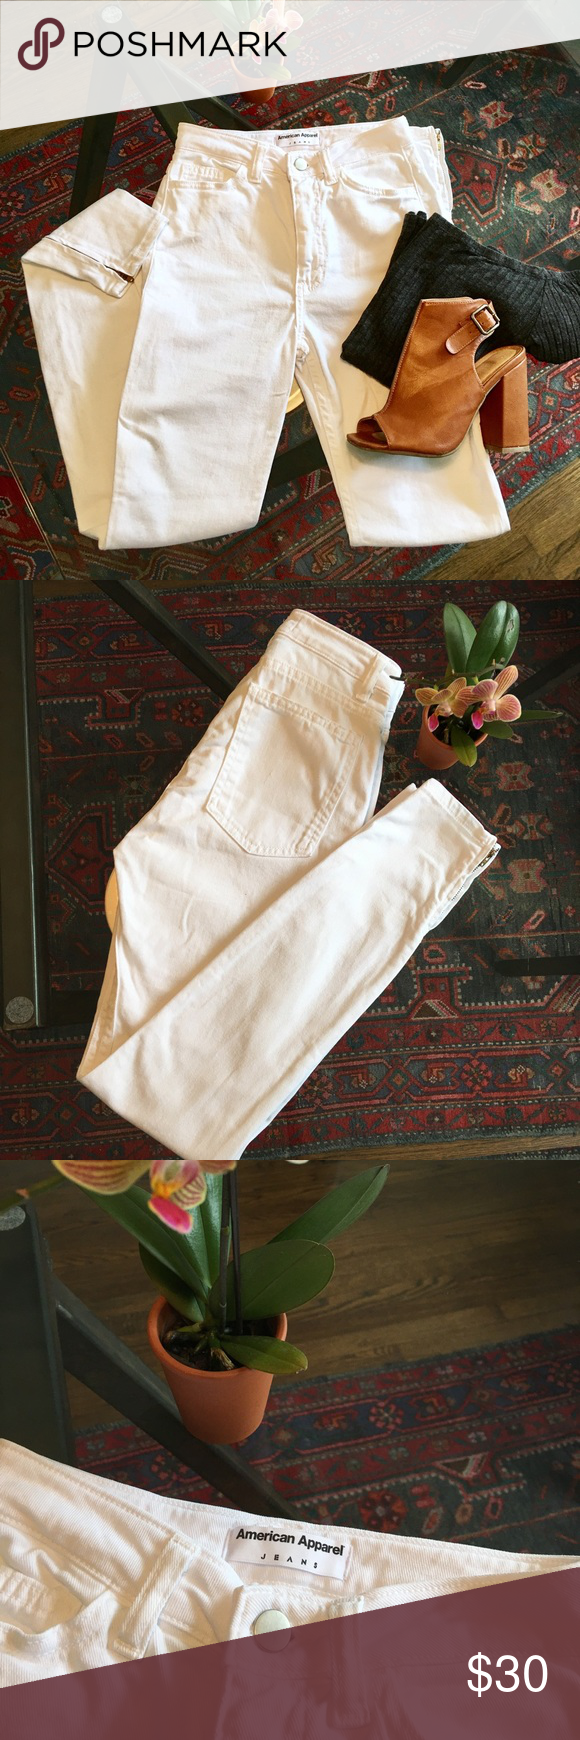 White Super Skinny American Apparel Jeans NWOT Never worn super skinny with zipper detail on the side of bottom hem! These are a Sz 25 but fit more like a 24 these jeans are perfect for spring 🌷💐 American Apparel Jeans Skinny